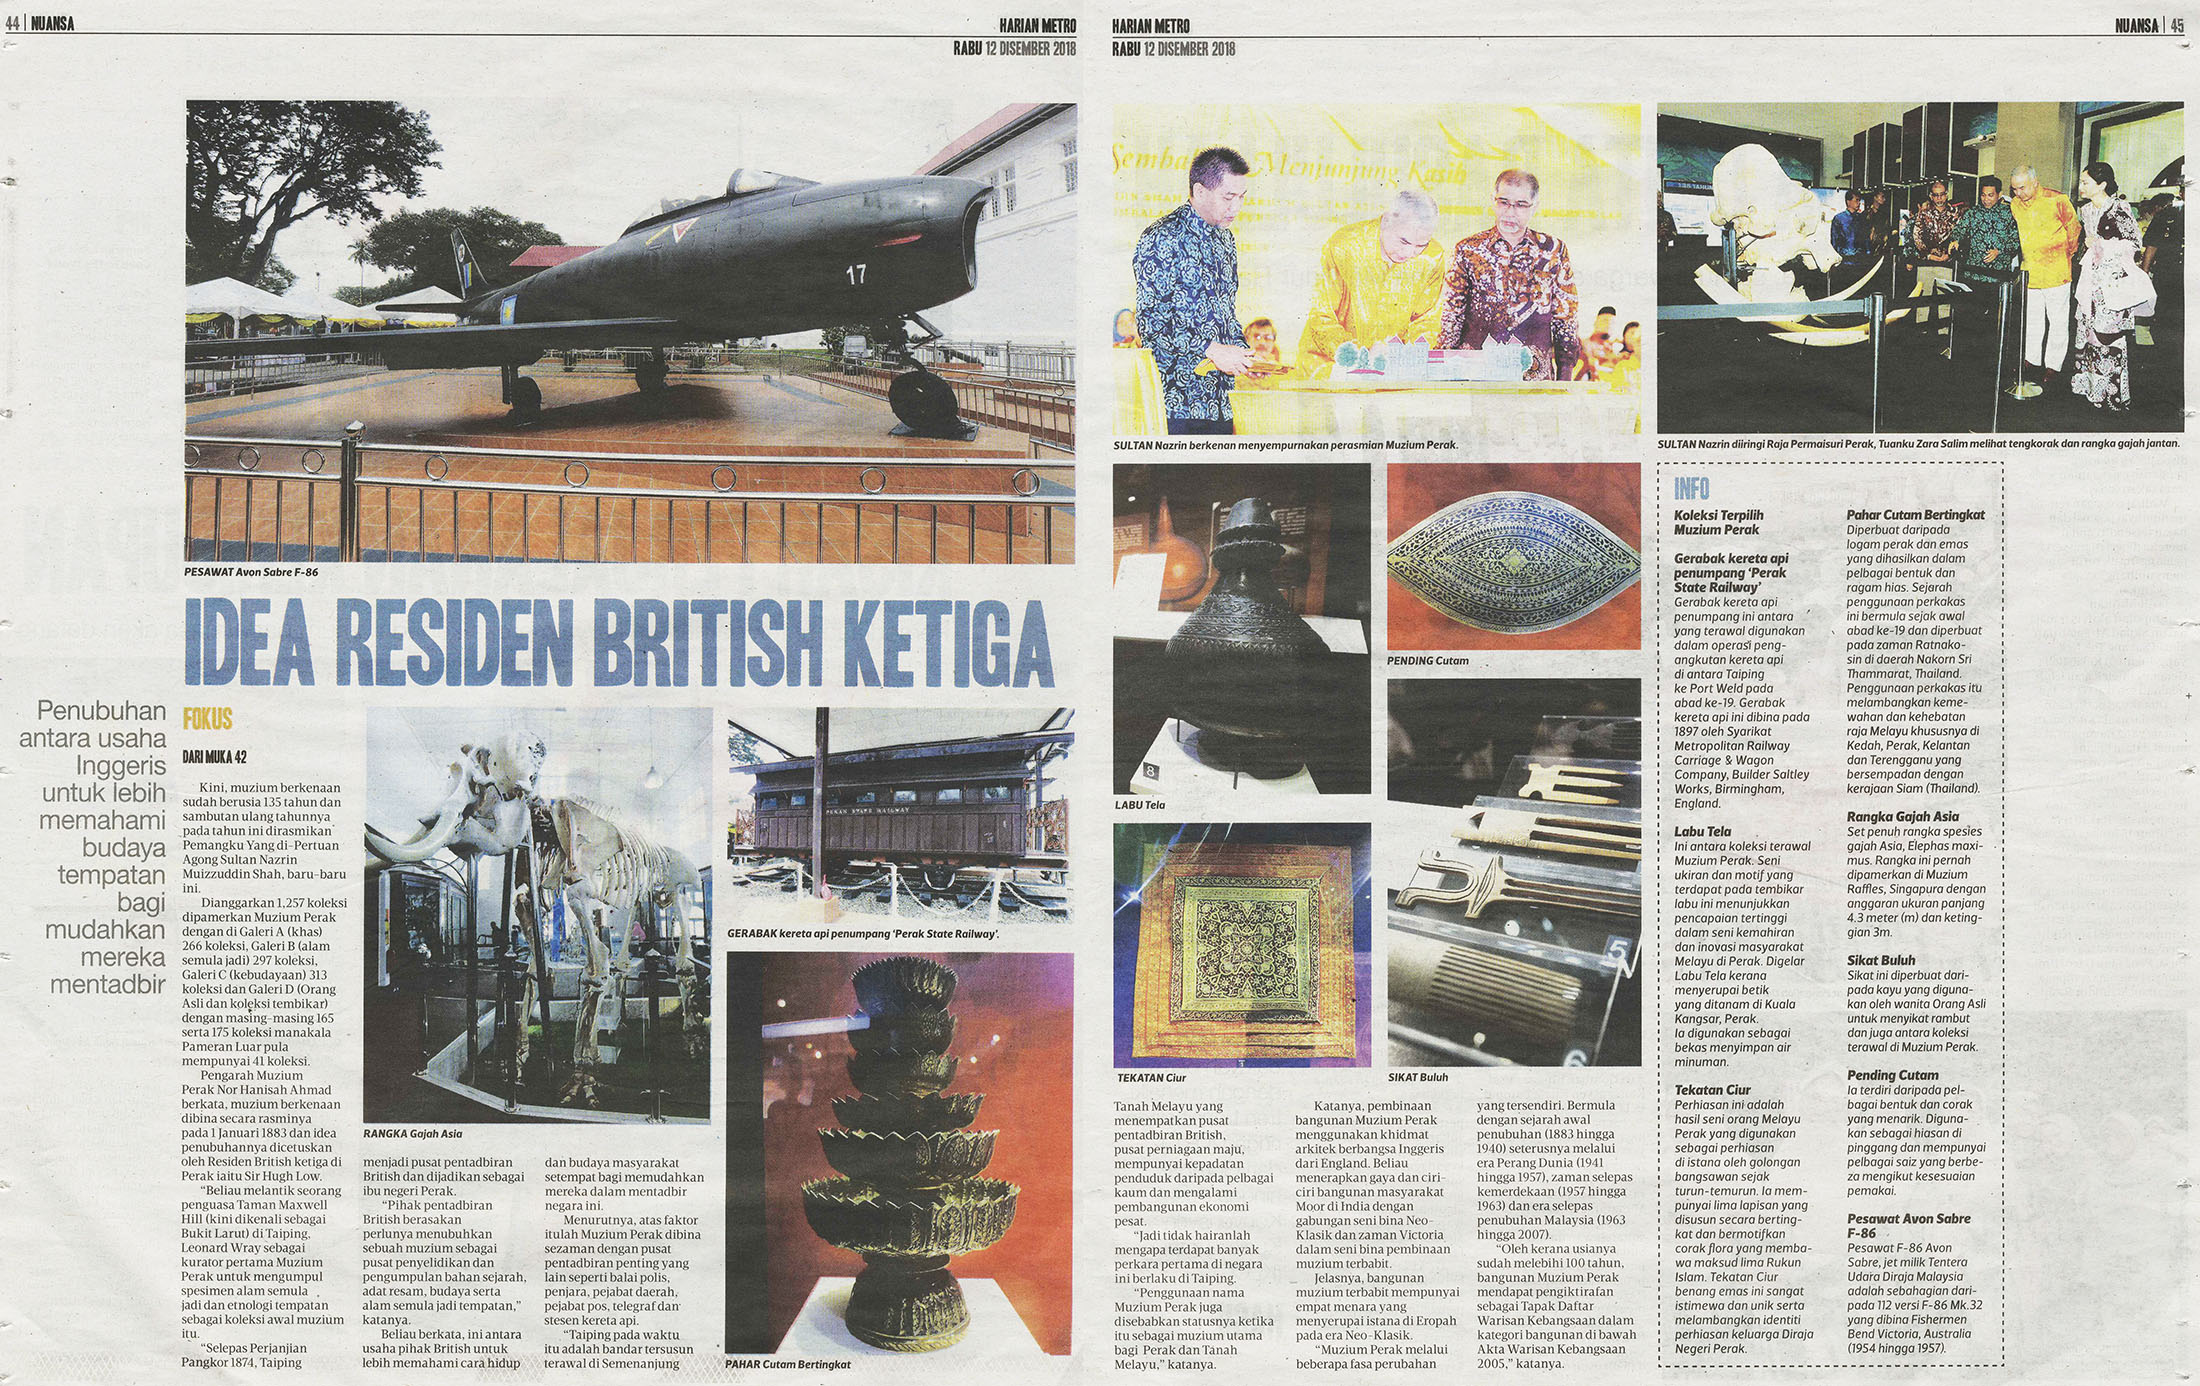 Idea Residen British Ketiga